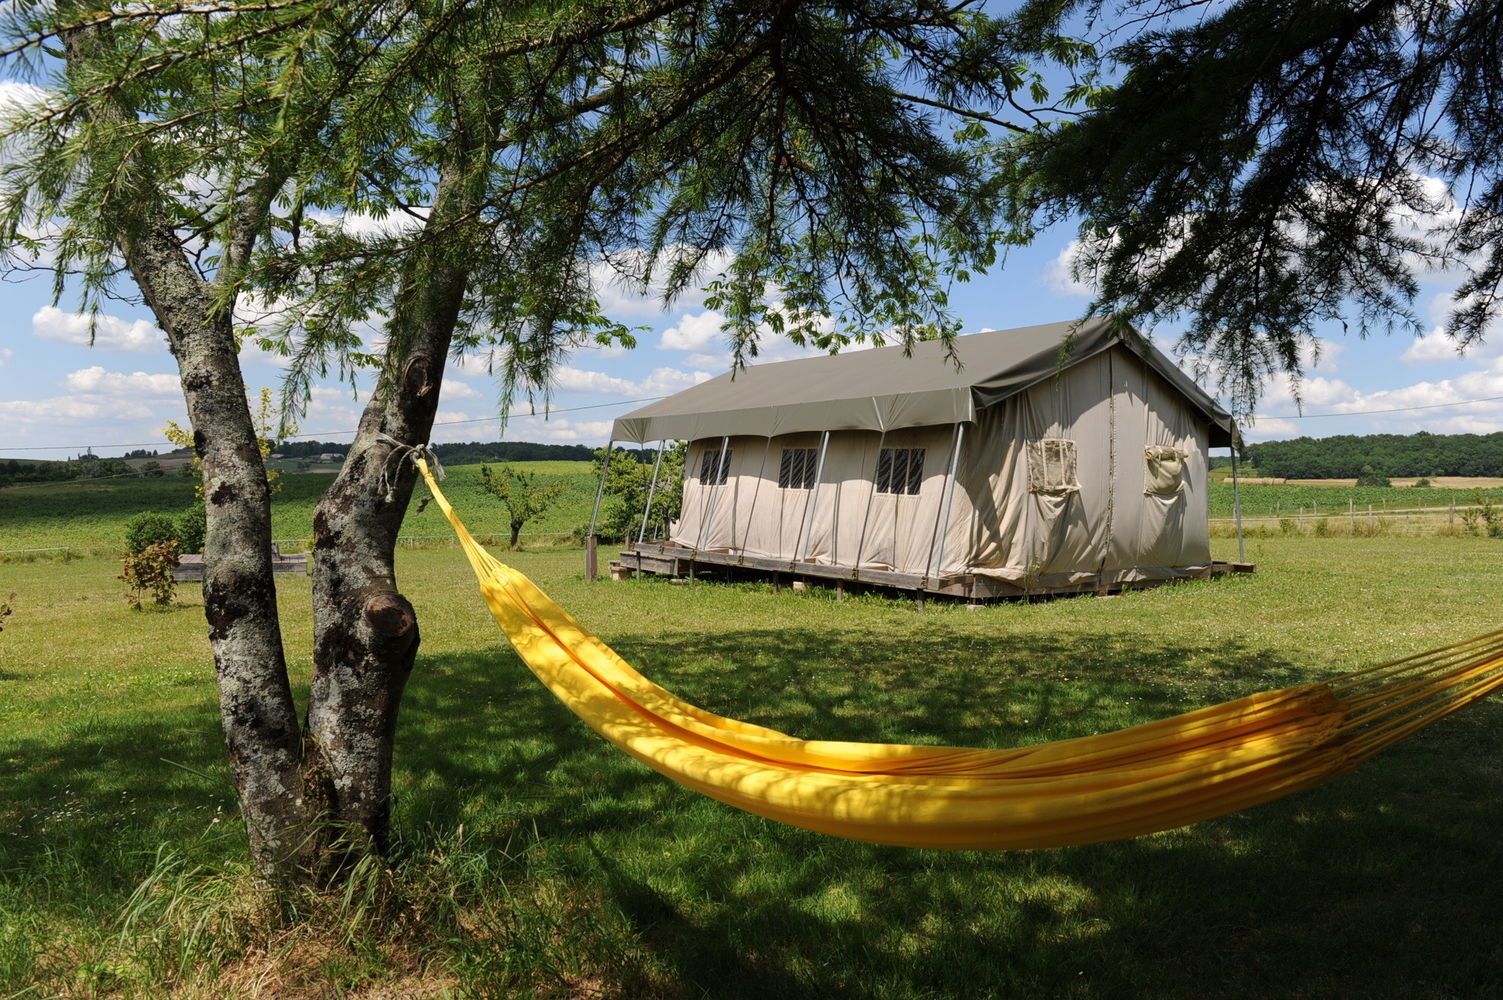 Campsites in Western France